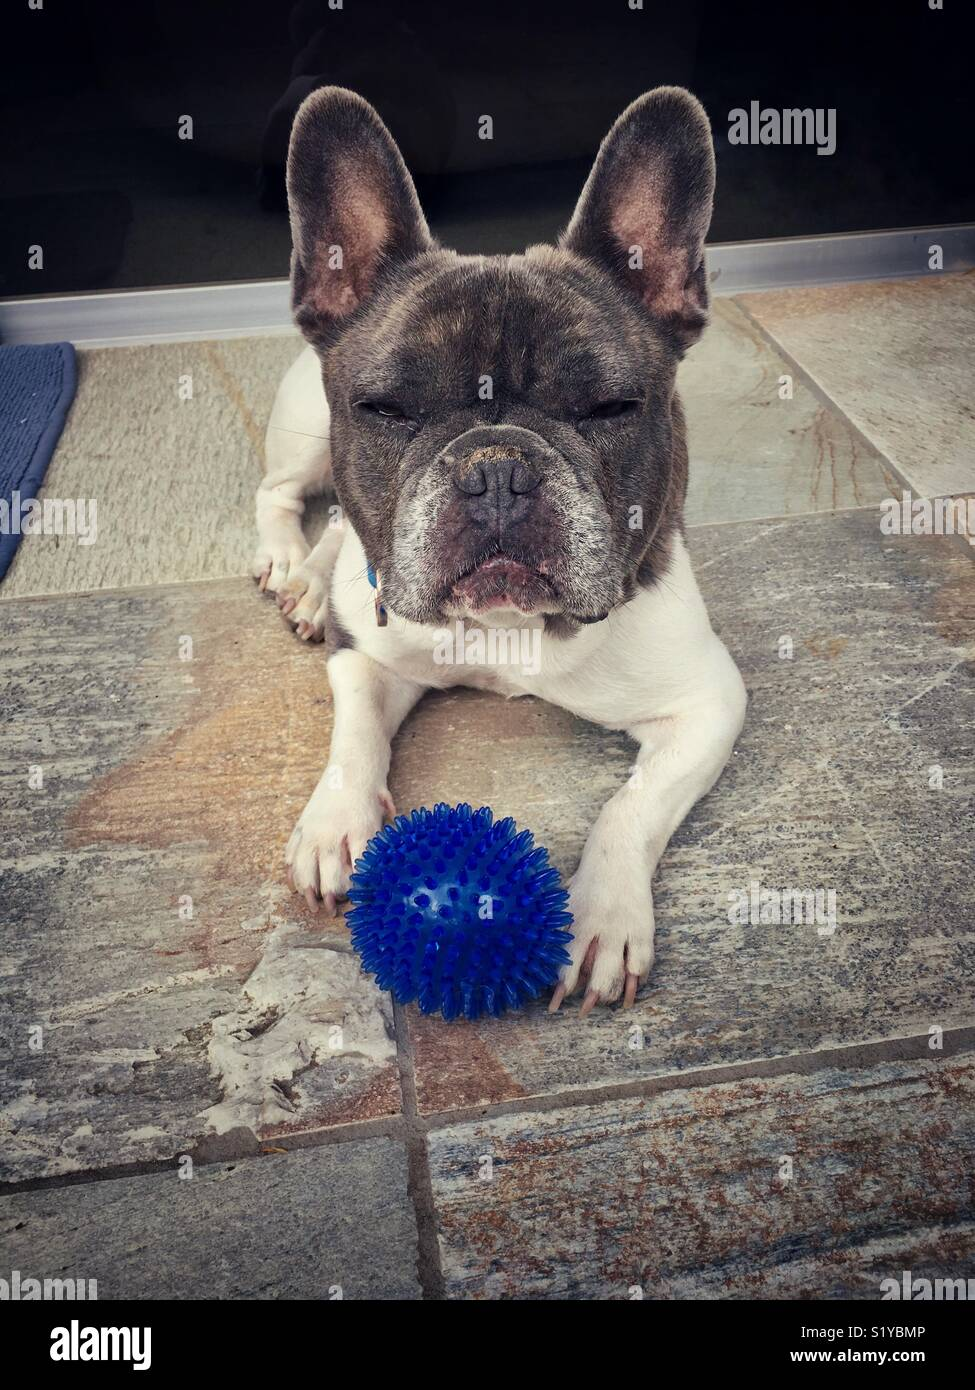 A French Bulldog gives an evil eye glance to anyone who dares to touch his favorite dog toy - Stock Image